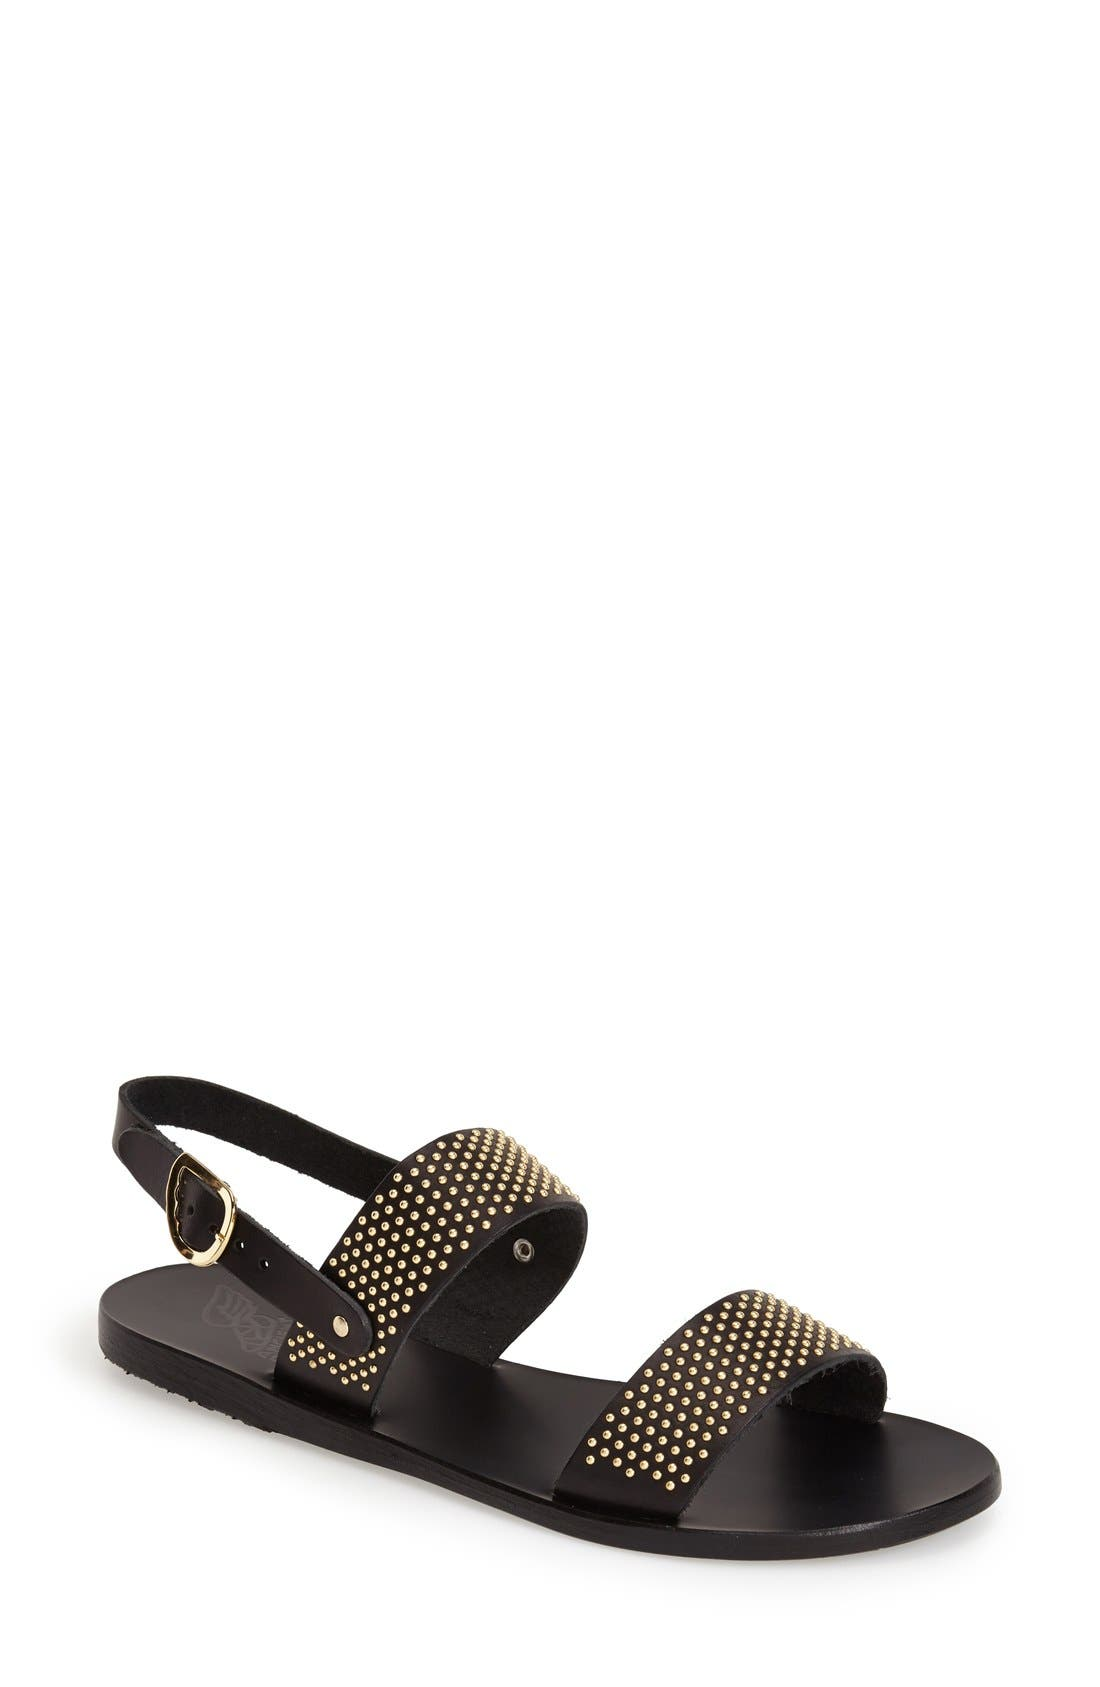 Alternate Image 1 Selected - Ancient Greek Sandals 'Dinami' Studded Double Band Sandal (Women)